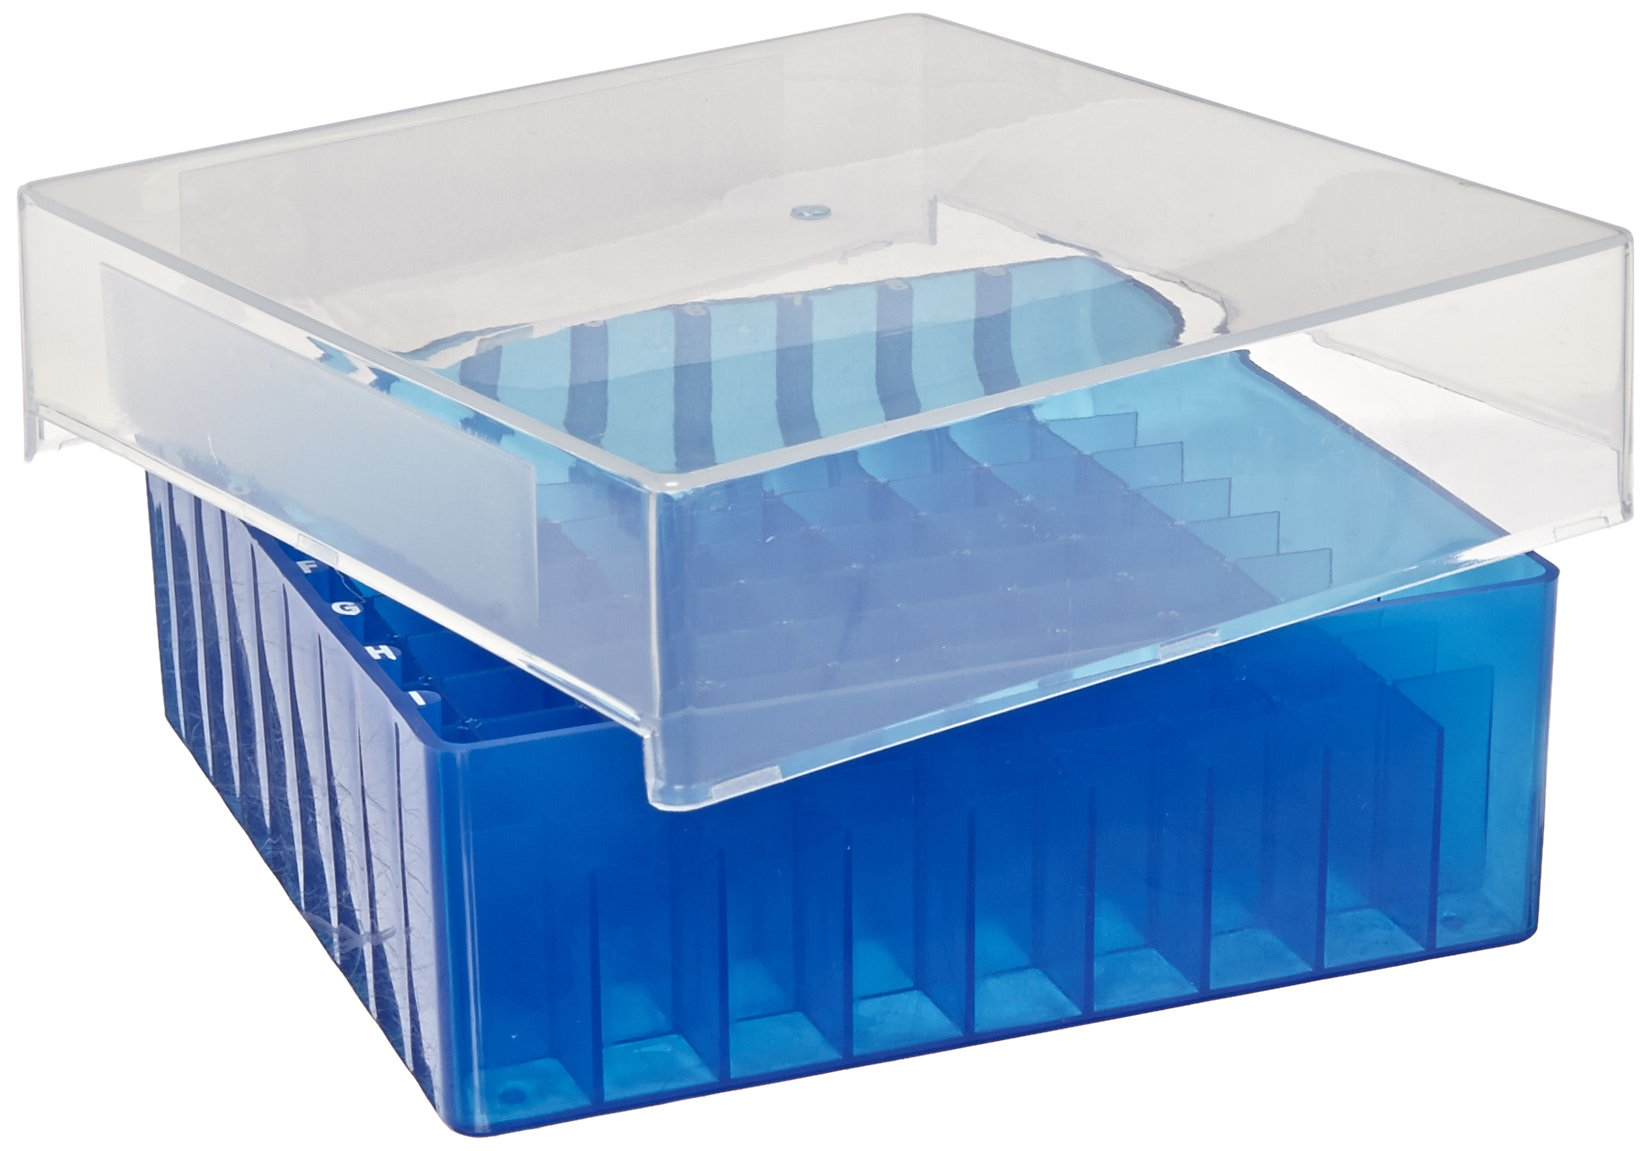 Argos PolarSafe R3117 Polypropylene 81-Place Storage Box, Assorted (Pack of 5) by Argos Technologies